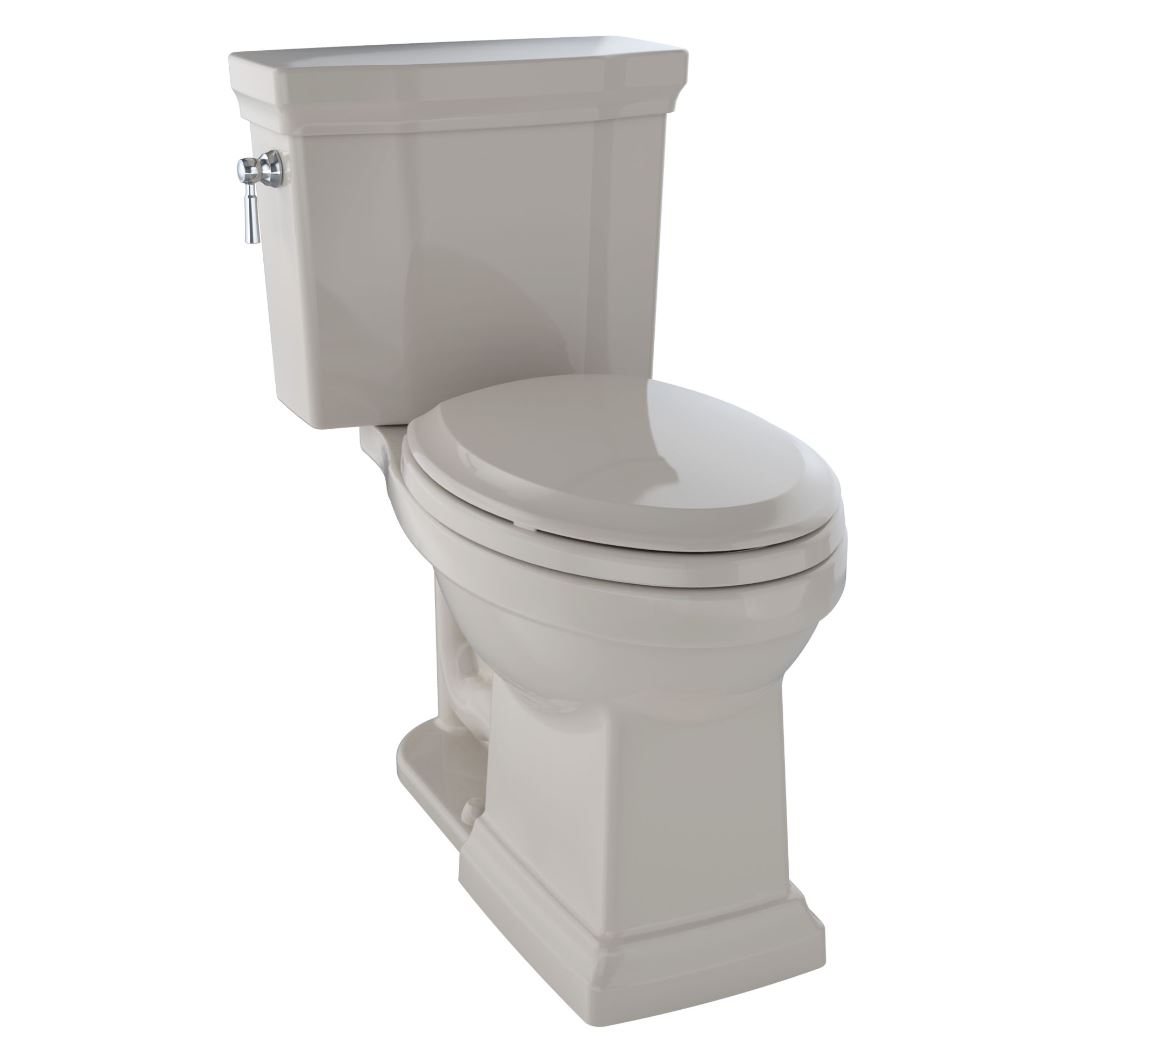 Toto CST404CUFG#03 Promenade II 1G Two-Piece Toilet - 1.0 GPF - Bone